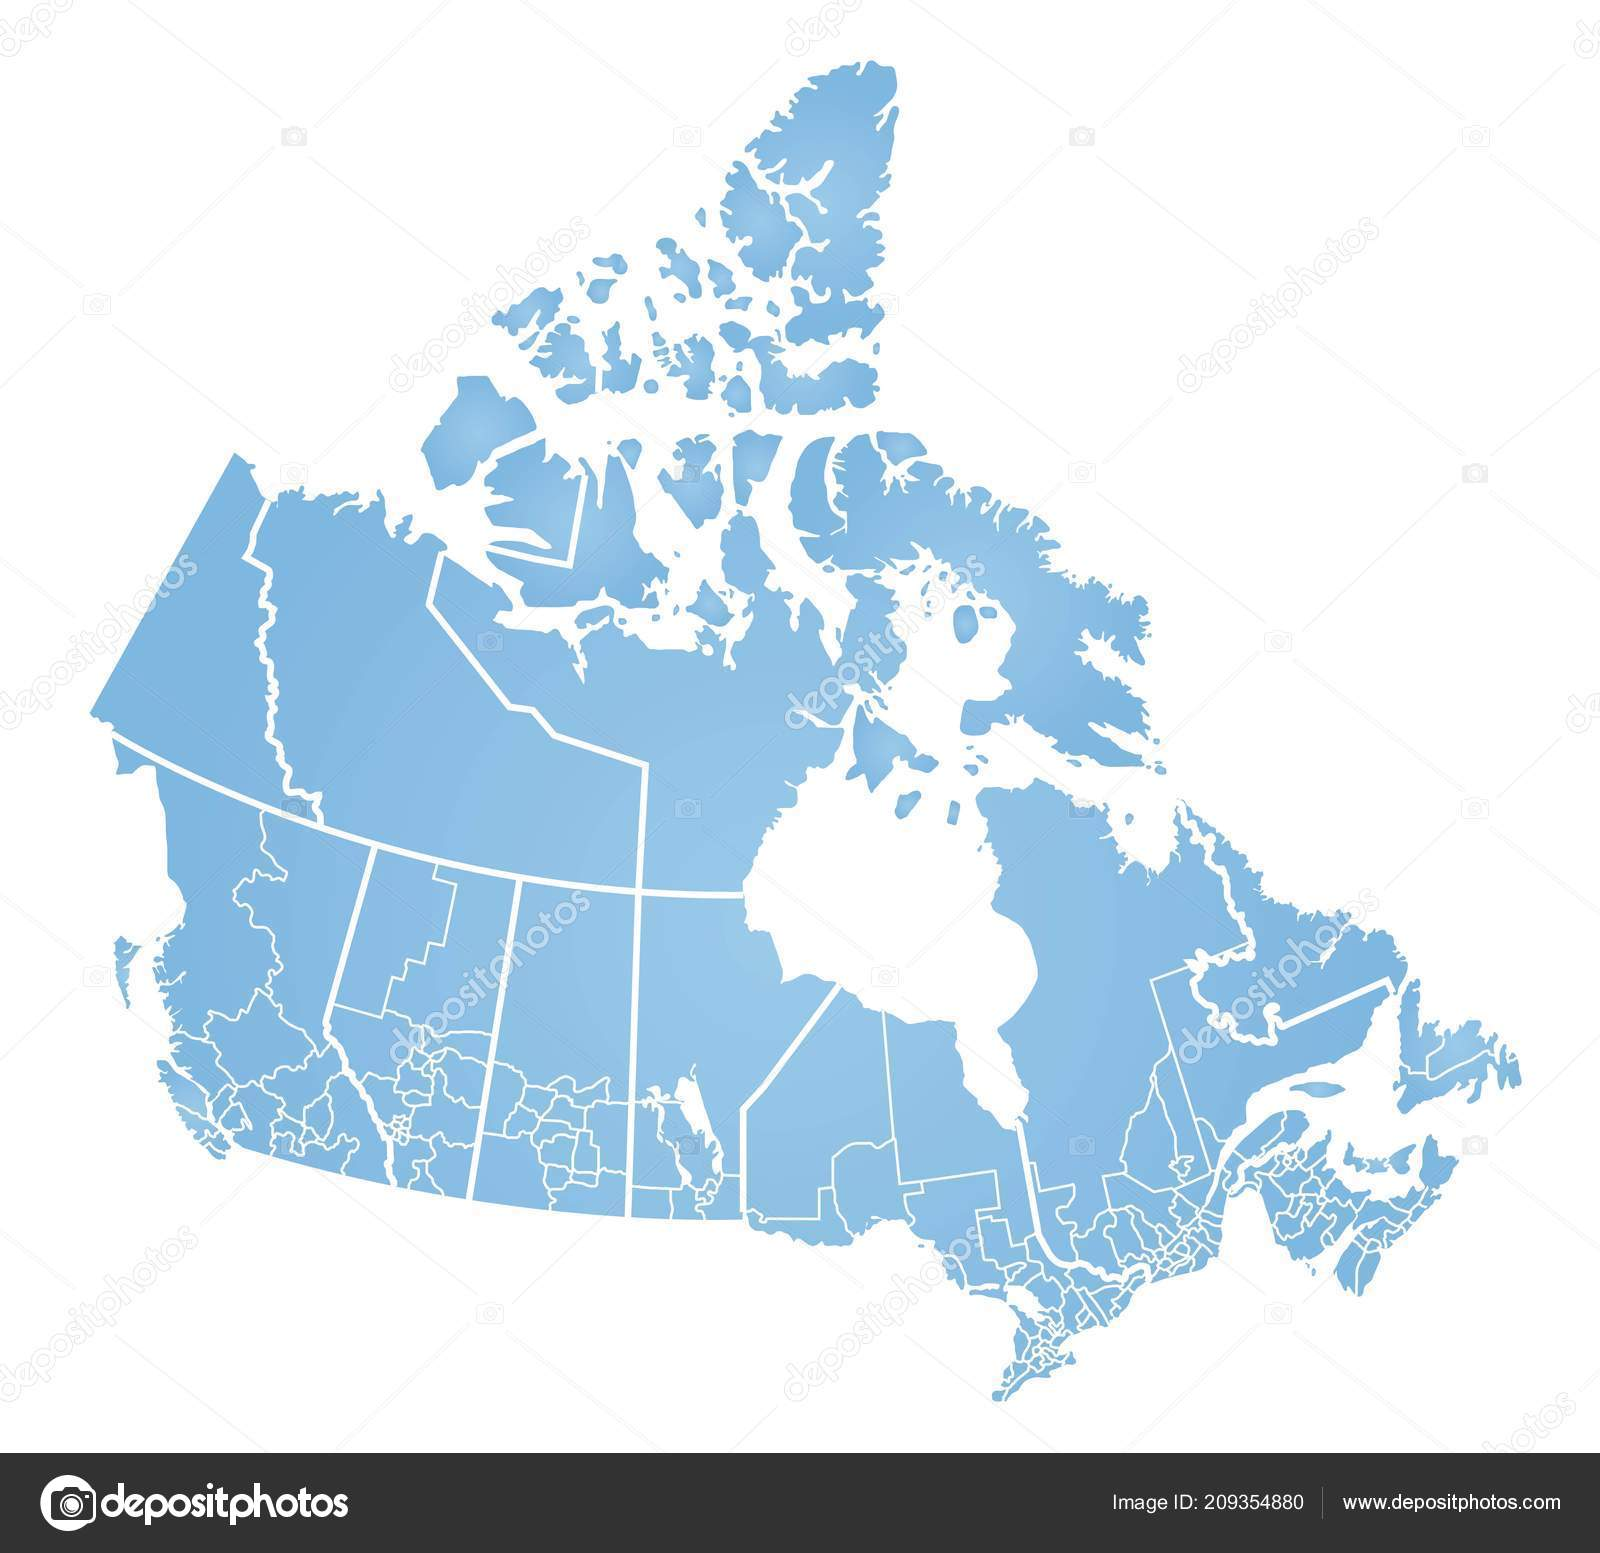 Detailed Map Of Canada.Detailed Map Canada Stock Vector C Blacklava36 209354880